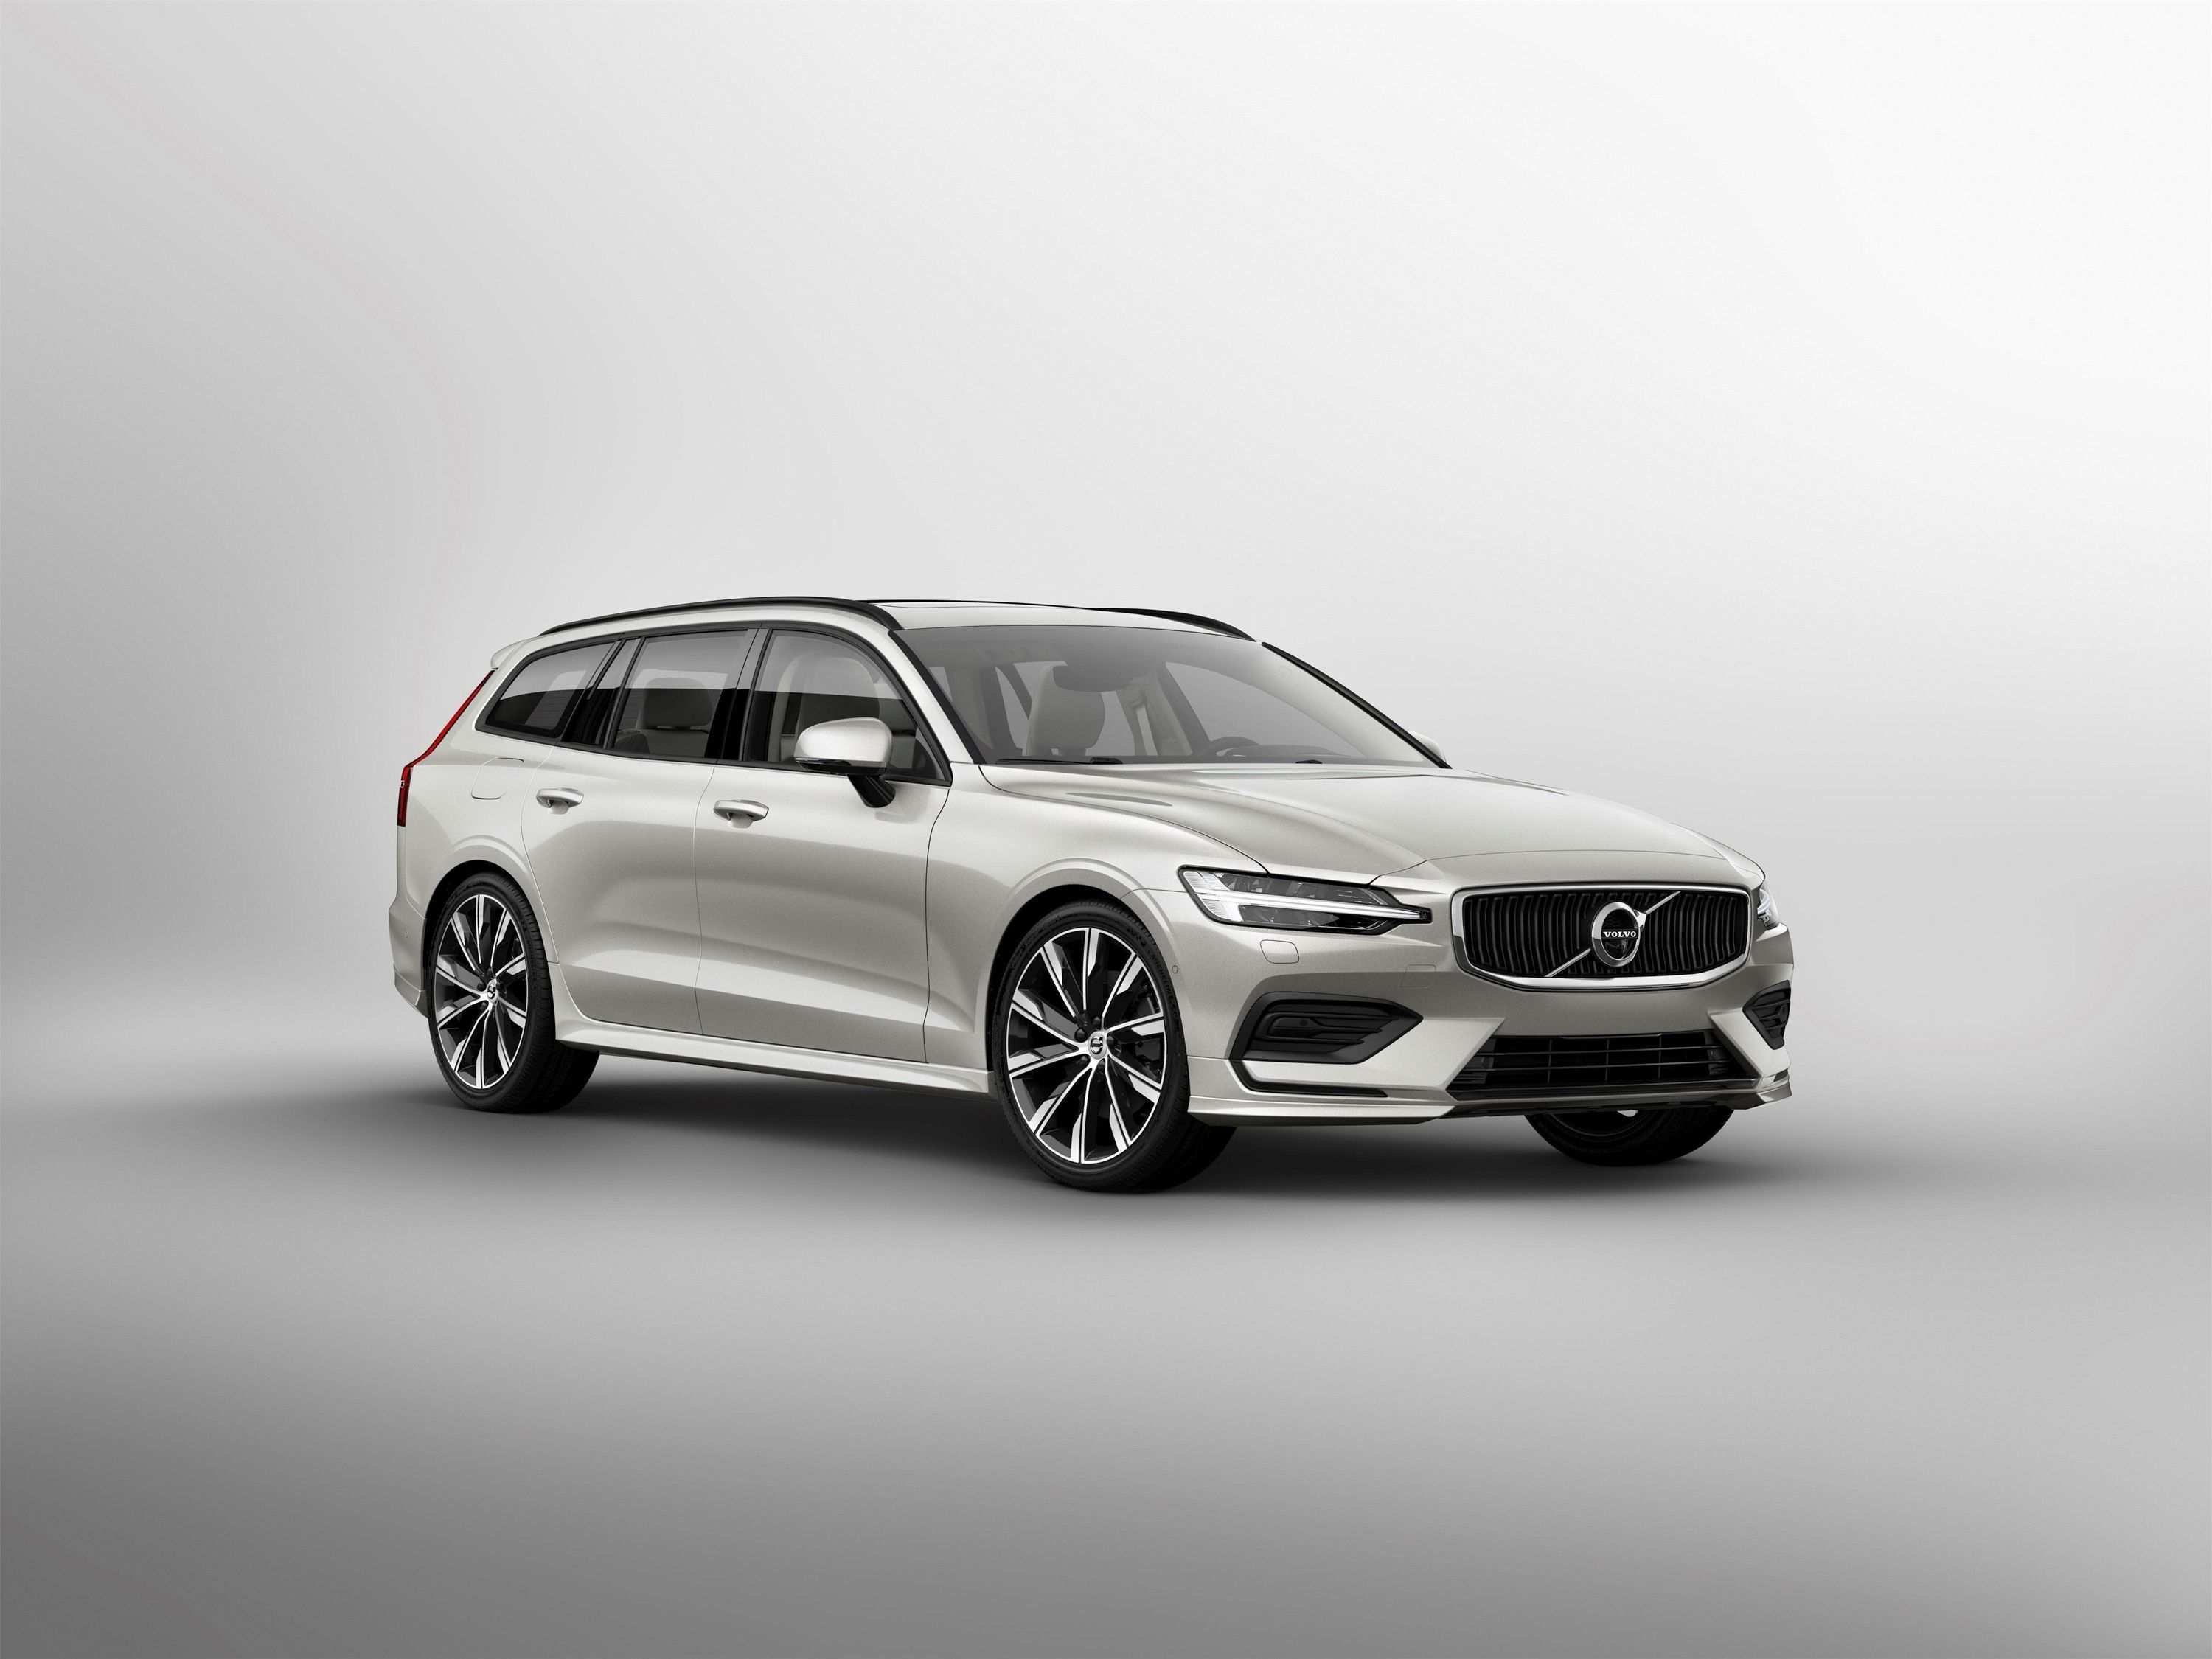 63 Gallery of Volvo 2019 V60 Review Interior Exterior And Review Ratings with Volvo 2019 V60 Review Interior Exterior And Review